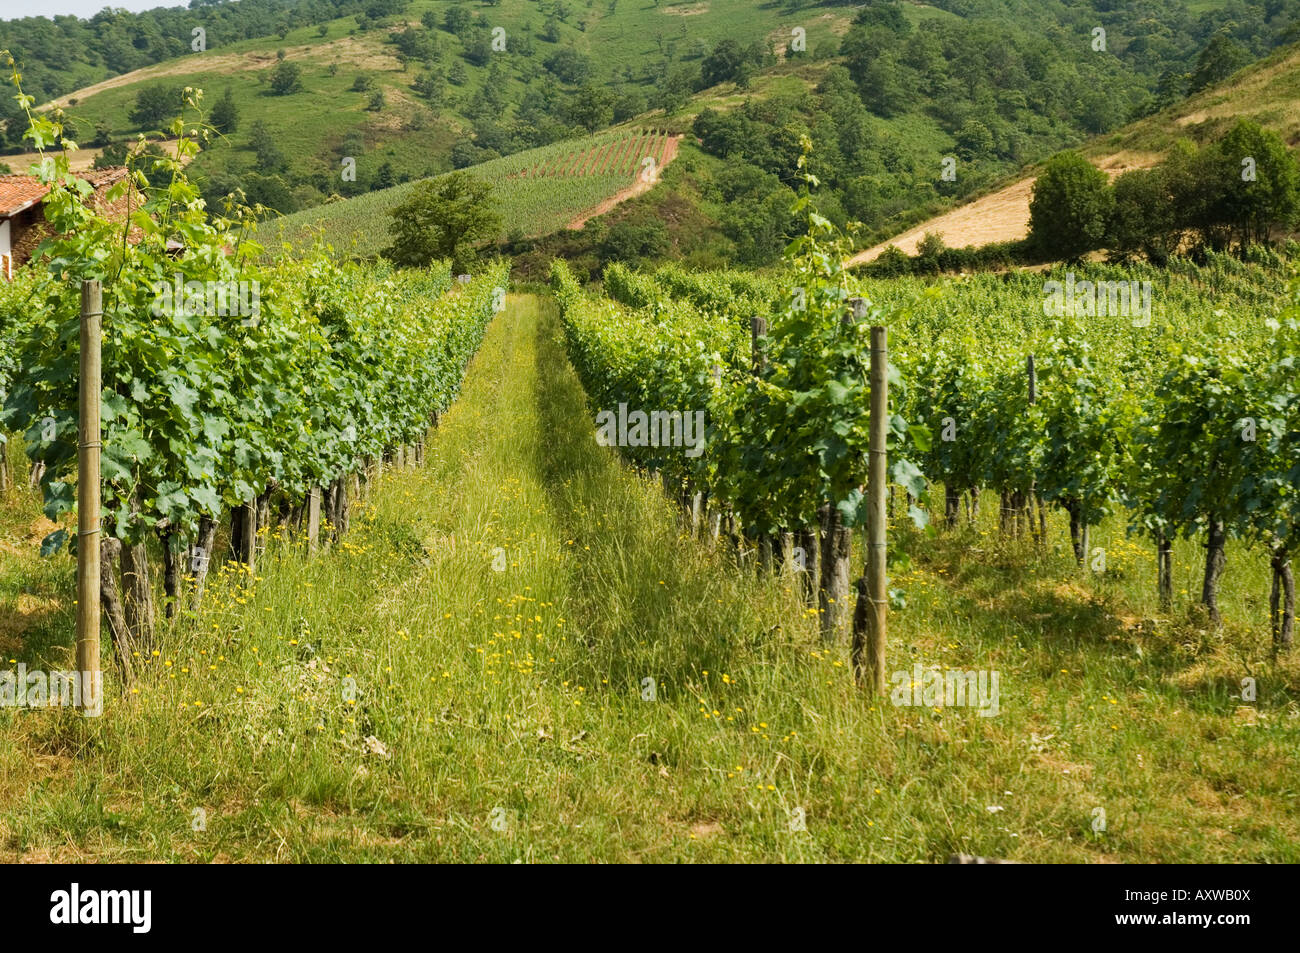 Vineyards in countryside near Saint Jean Pied de Port, Basque country, Pyrenees-Atlantiques, Aquitaine, France - Stock Image